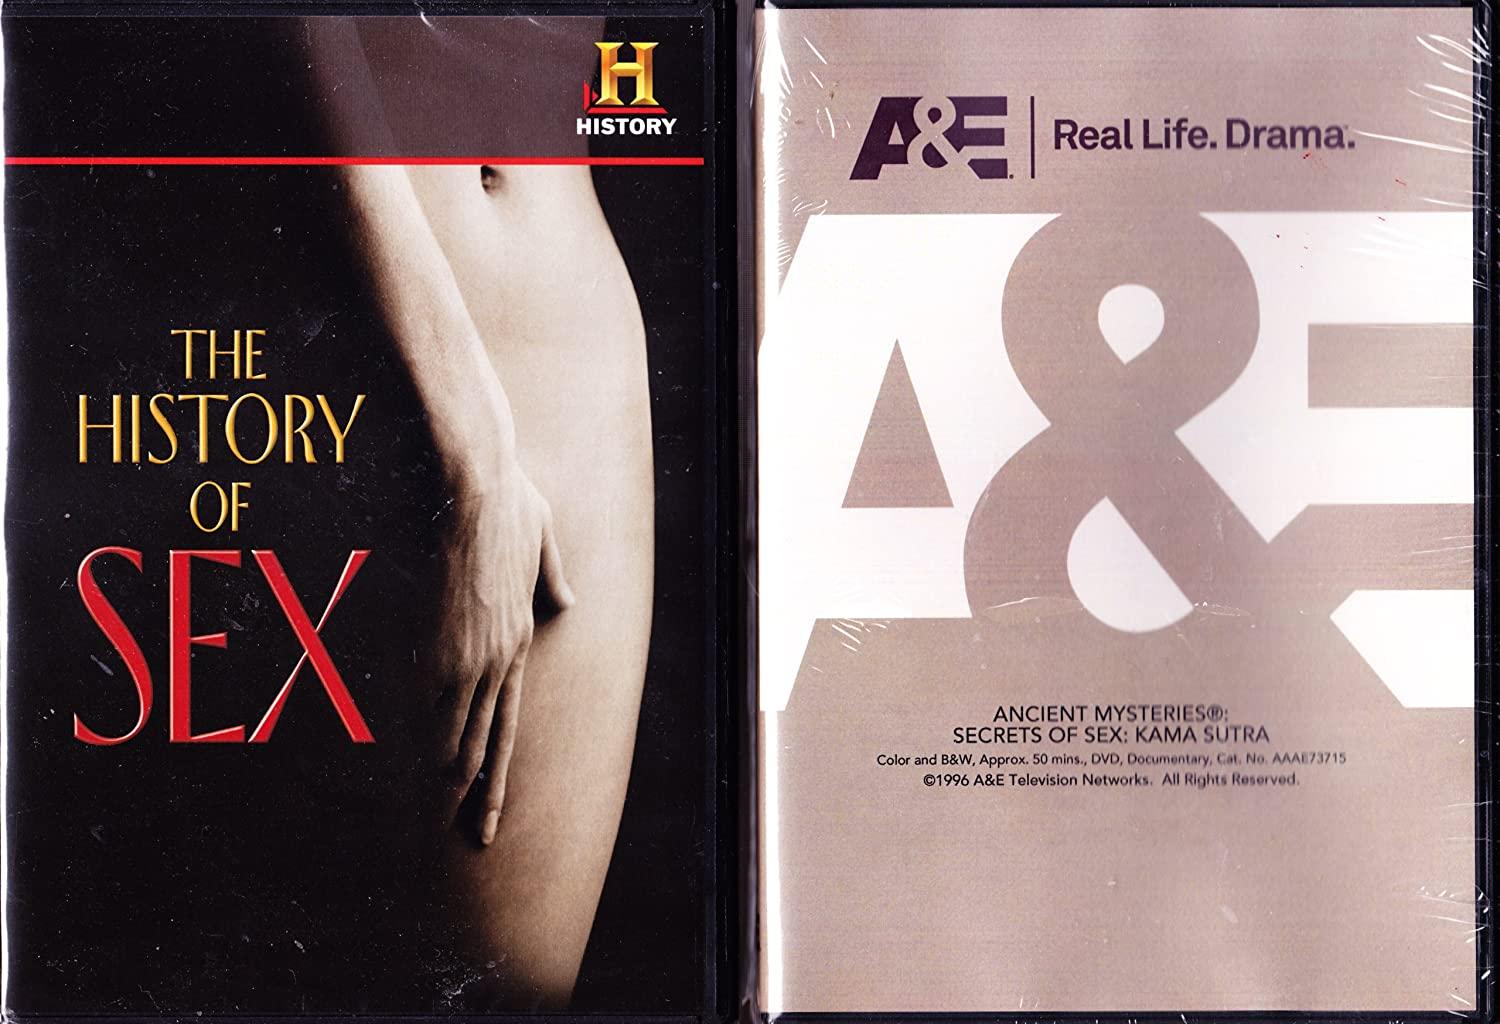 History channel history of sex